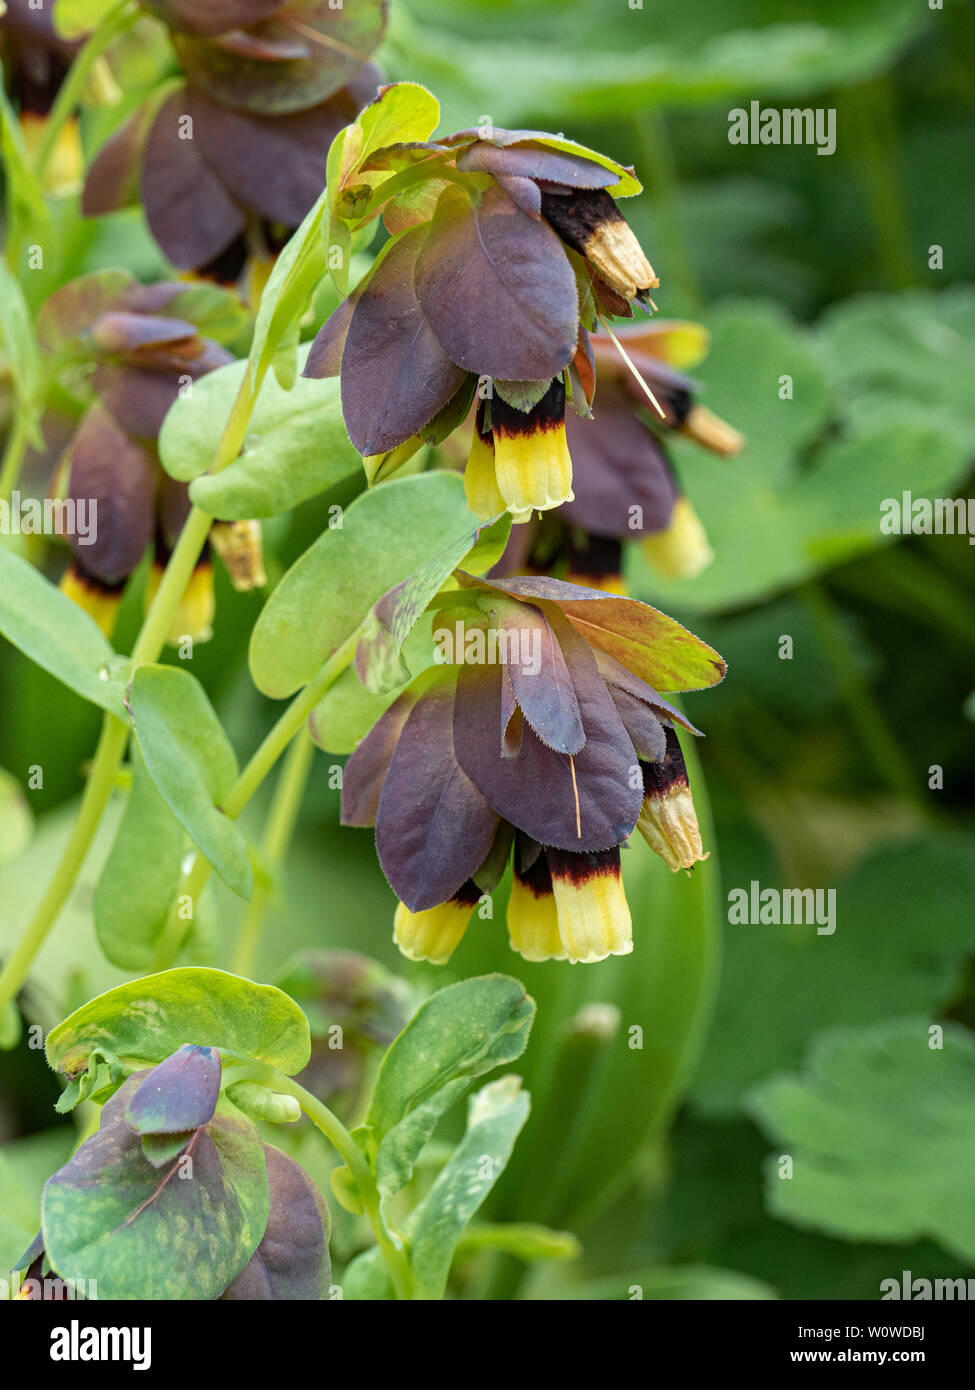 A close up of the bright yellow tipped flowers of Cerinthe major Yellow Gem - Stock Image